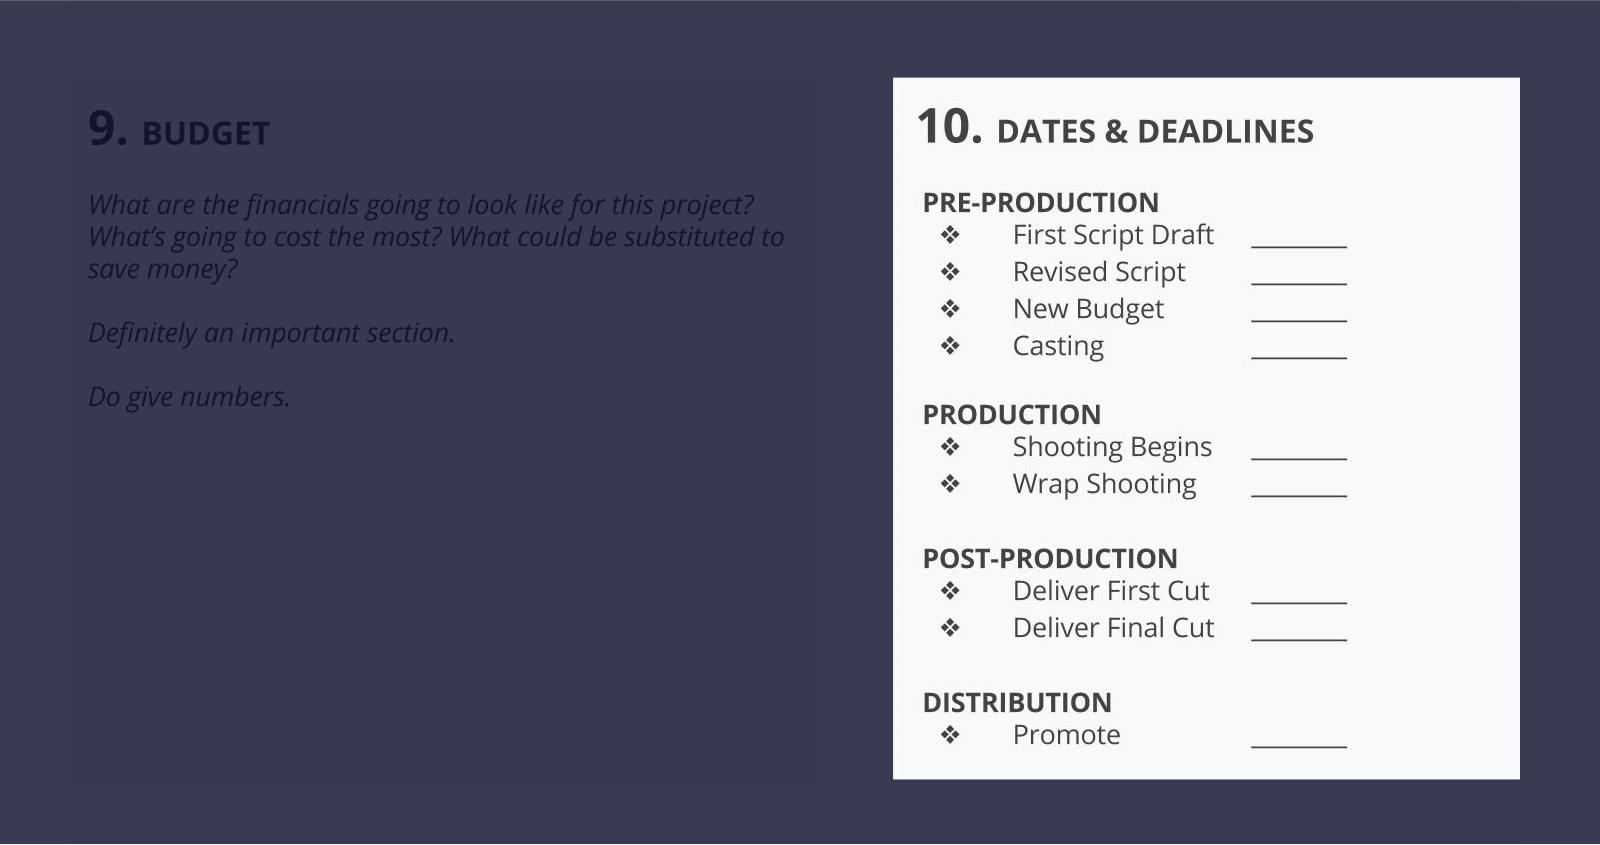 The Best Creative Brief Template For Video Agencies [Free Download] - Section 10 - Dates and deadlines